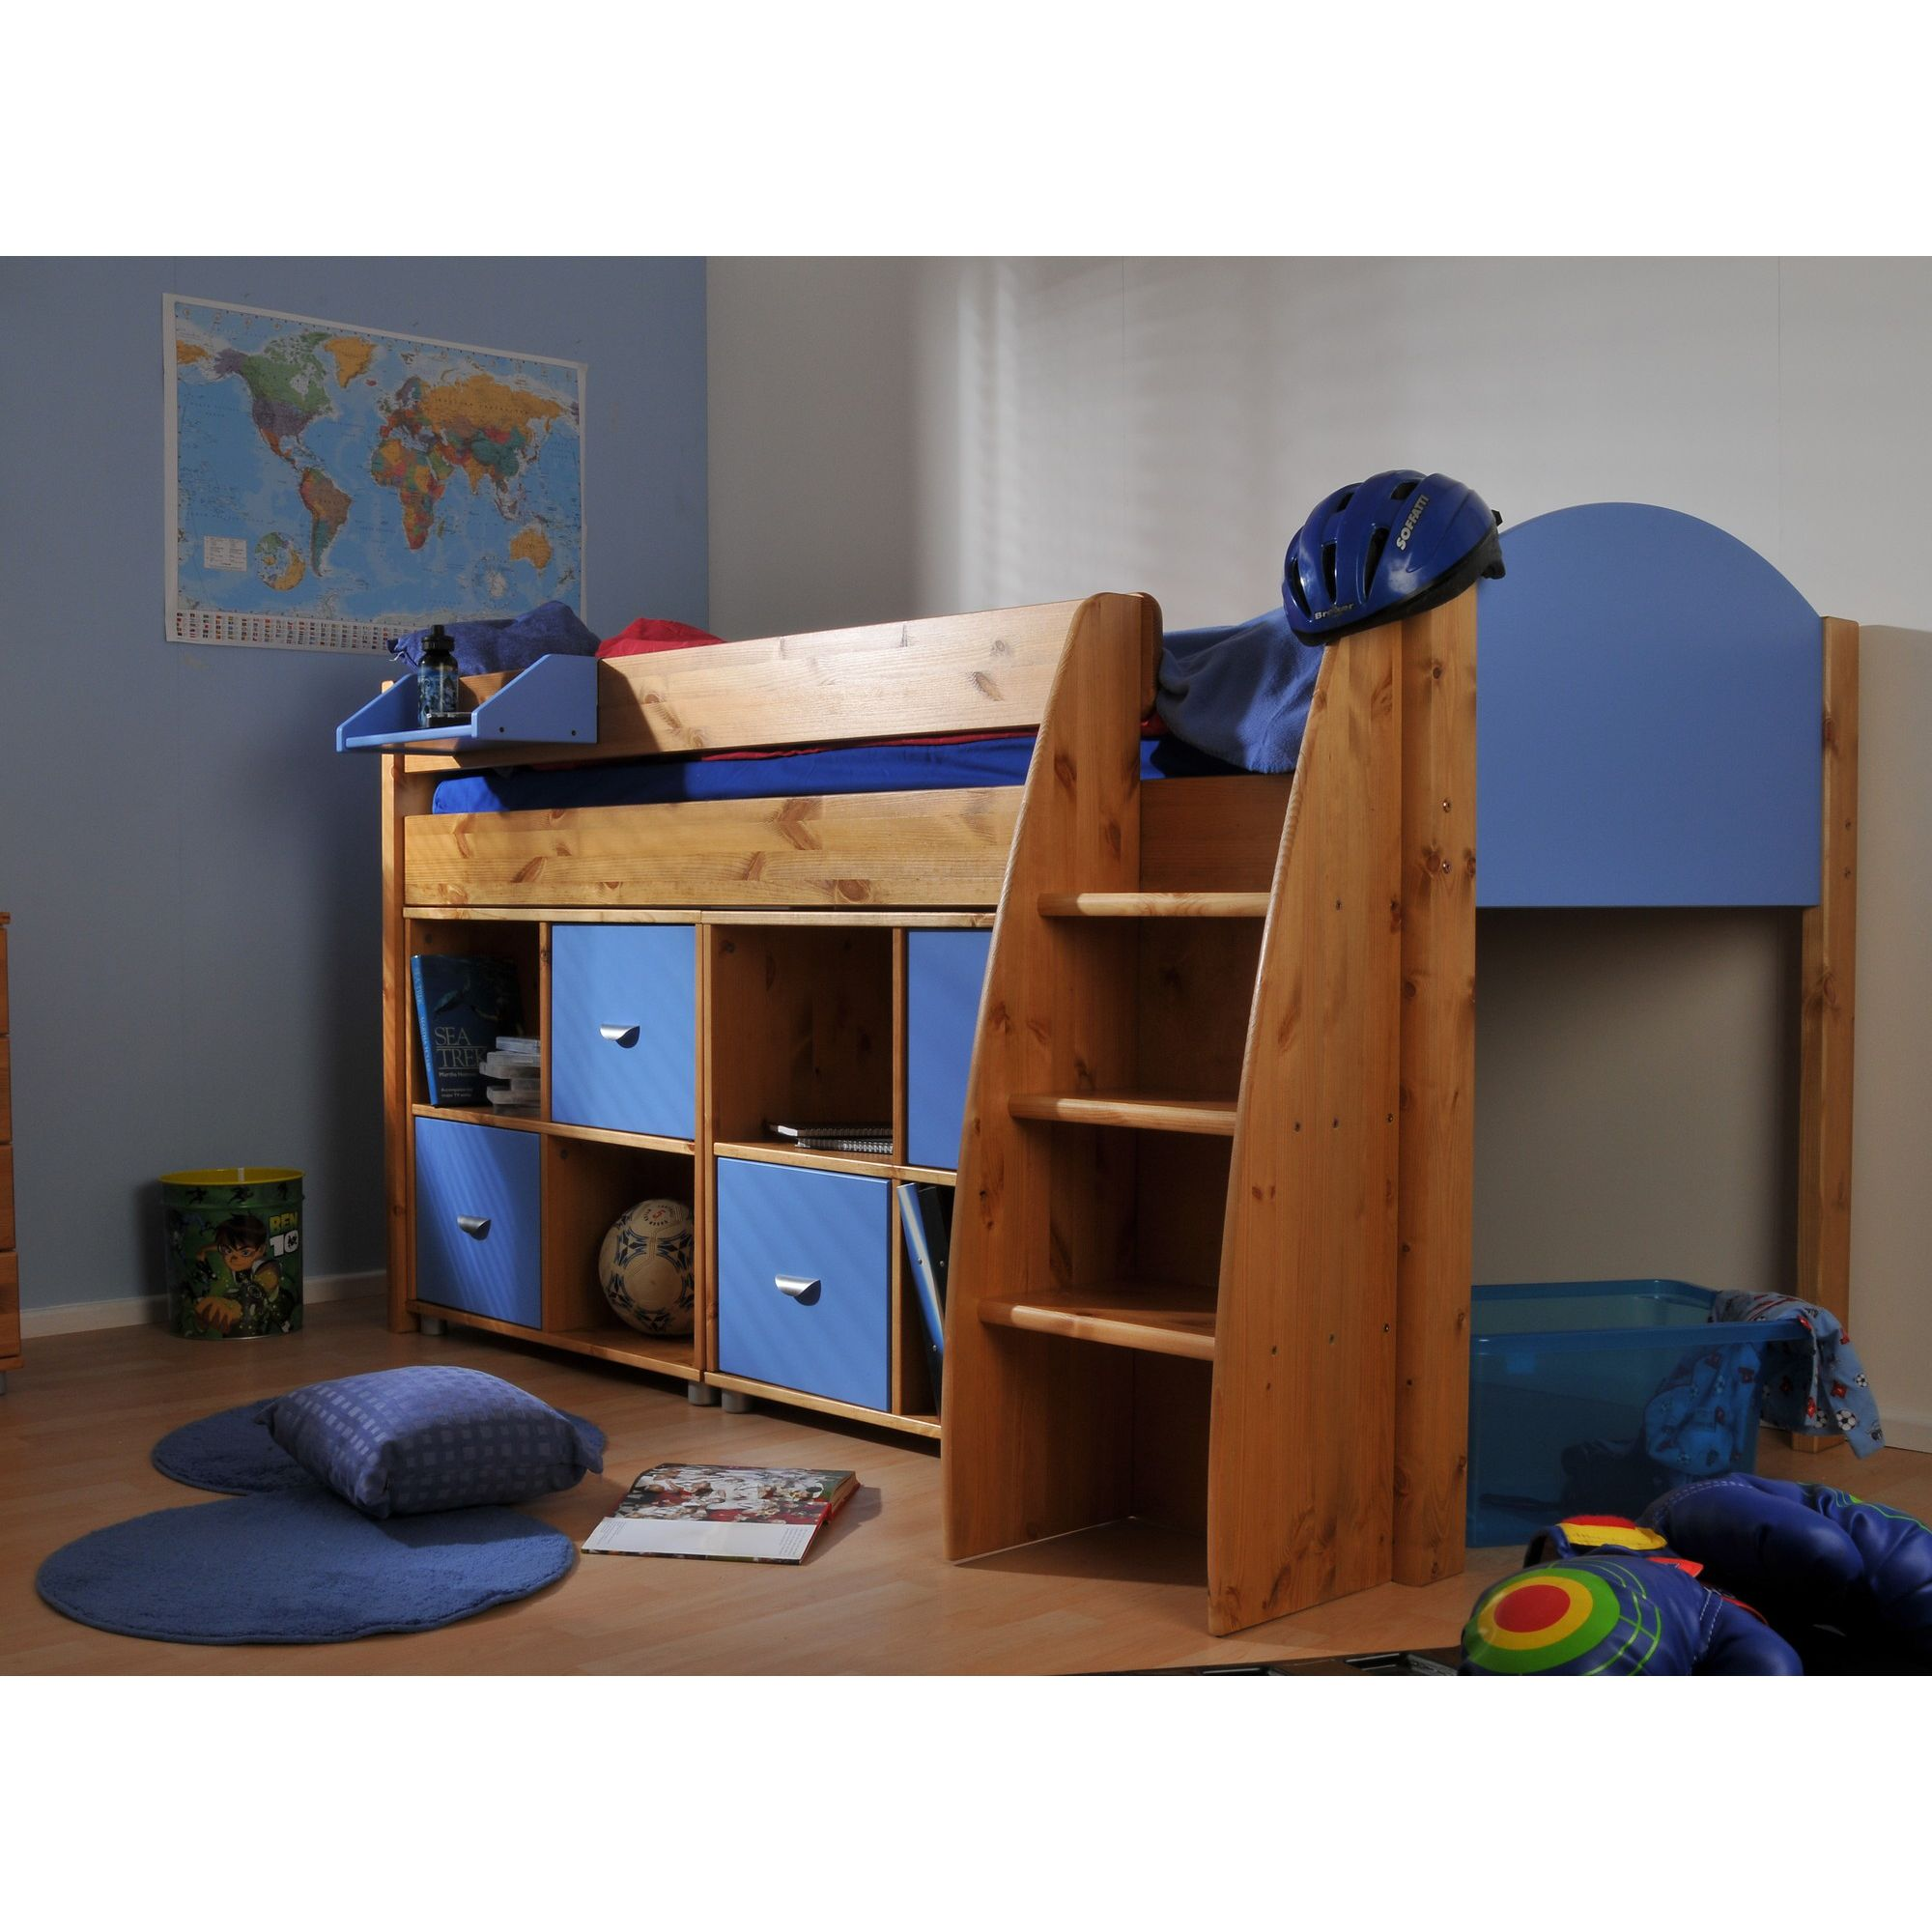 Stompa Rondo Mid Sleeper with 8 Cube Unit - Blue - White at Tesco Direct